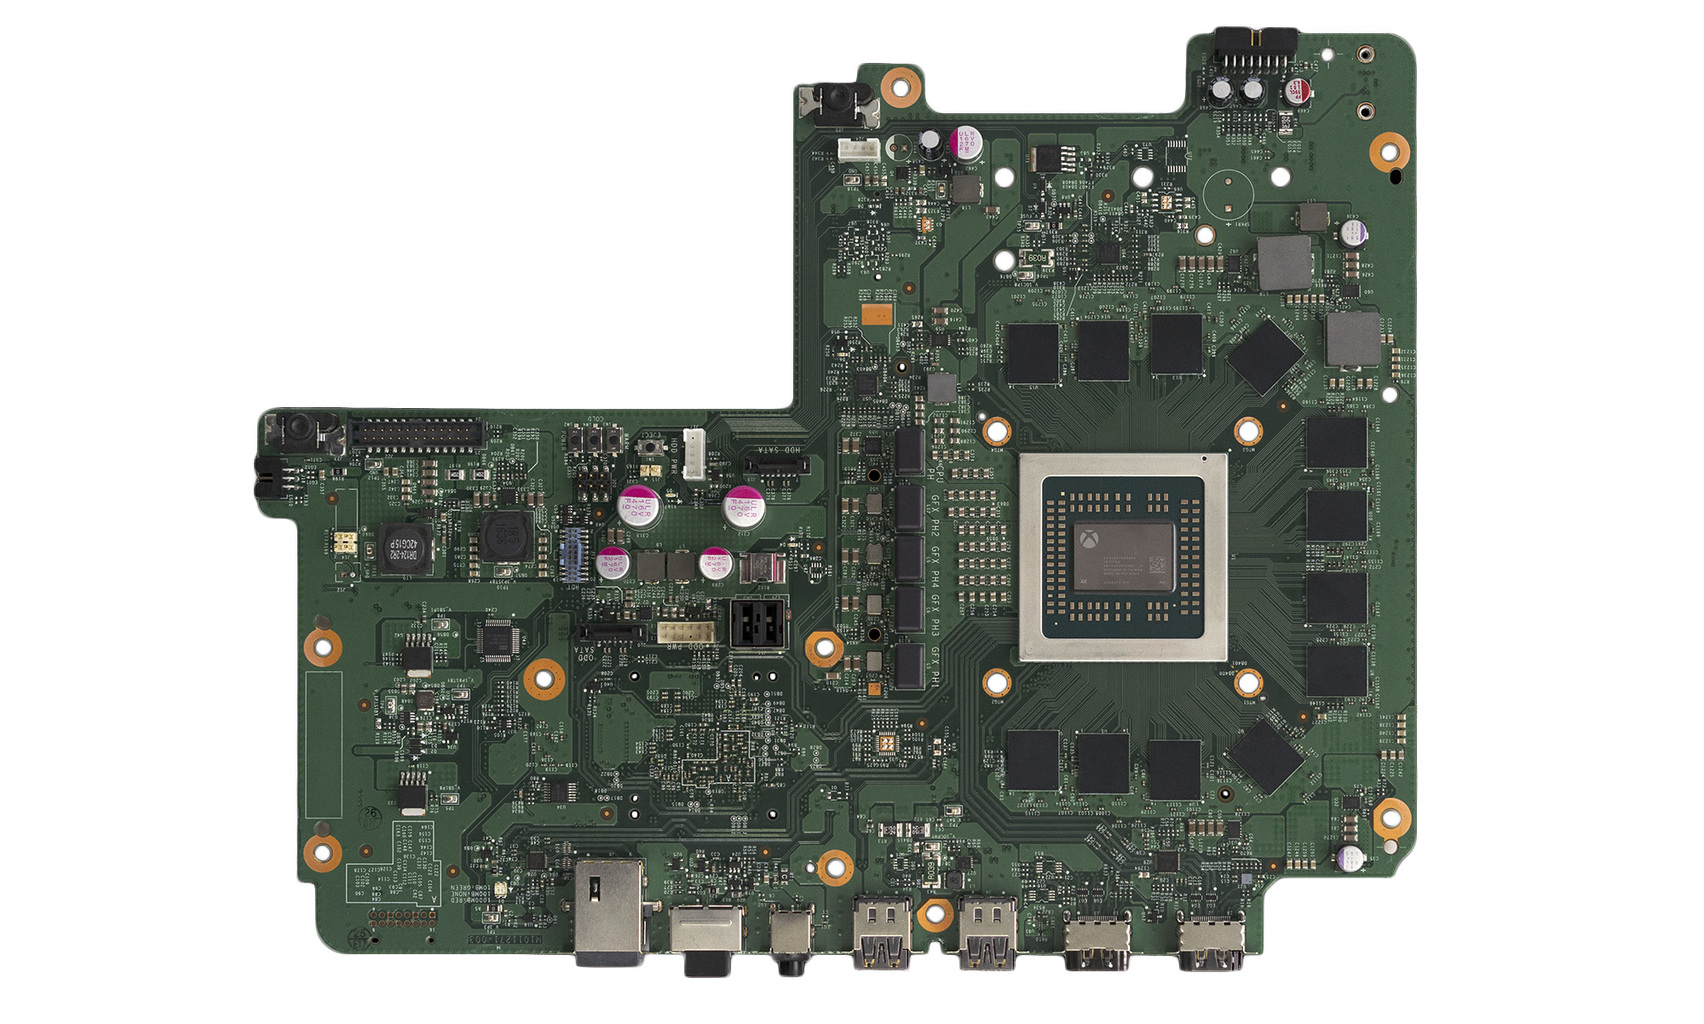 Xbox One X motherboard